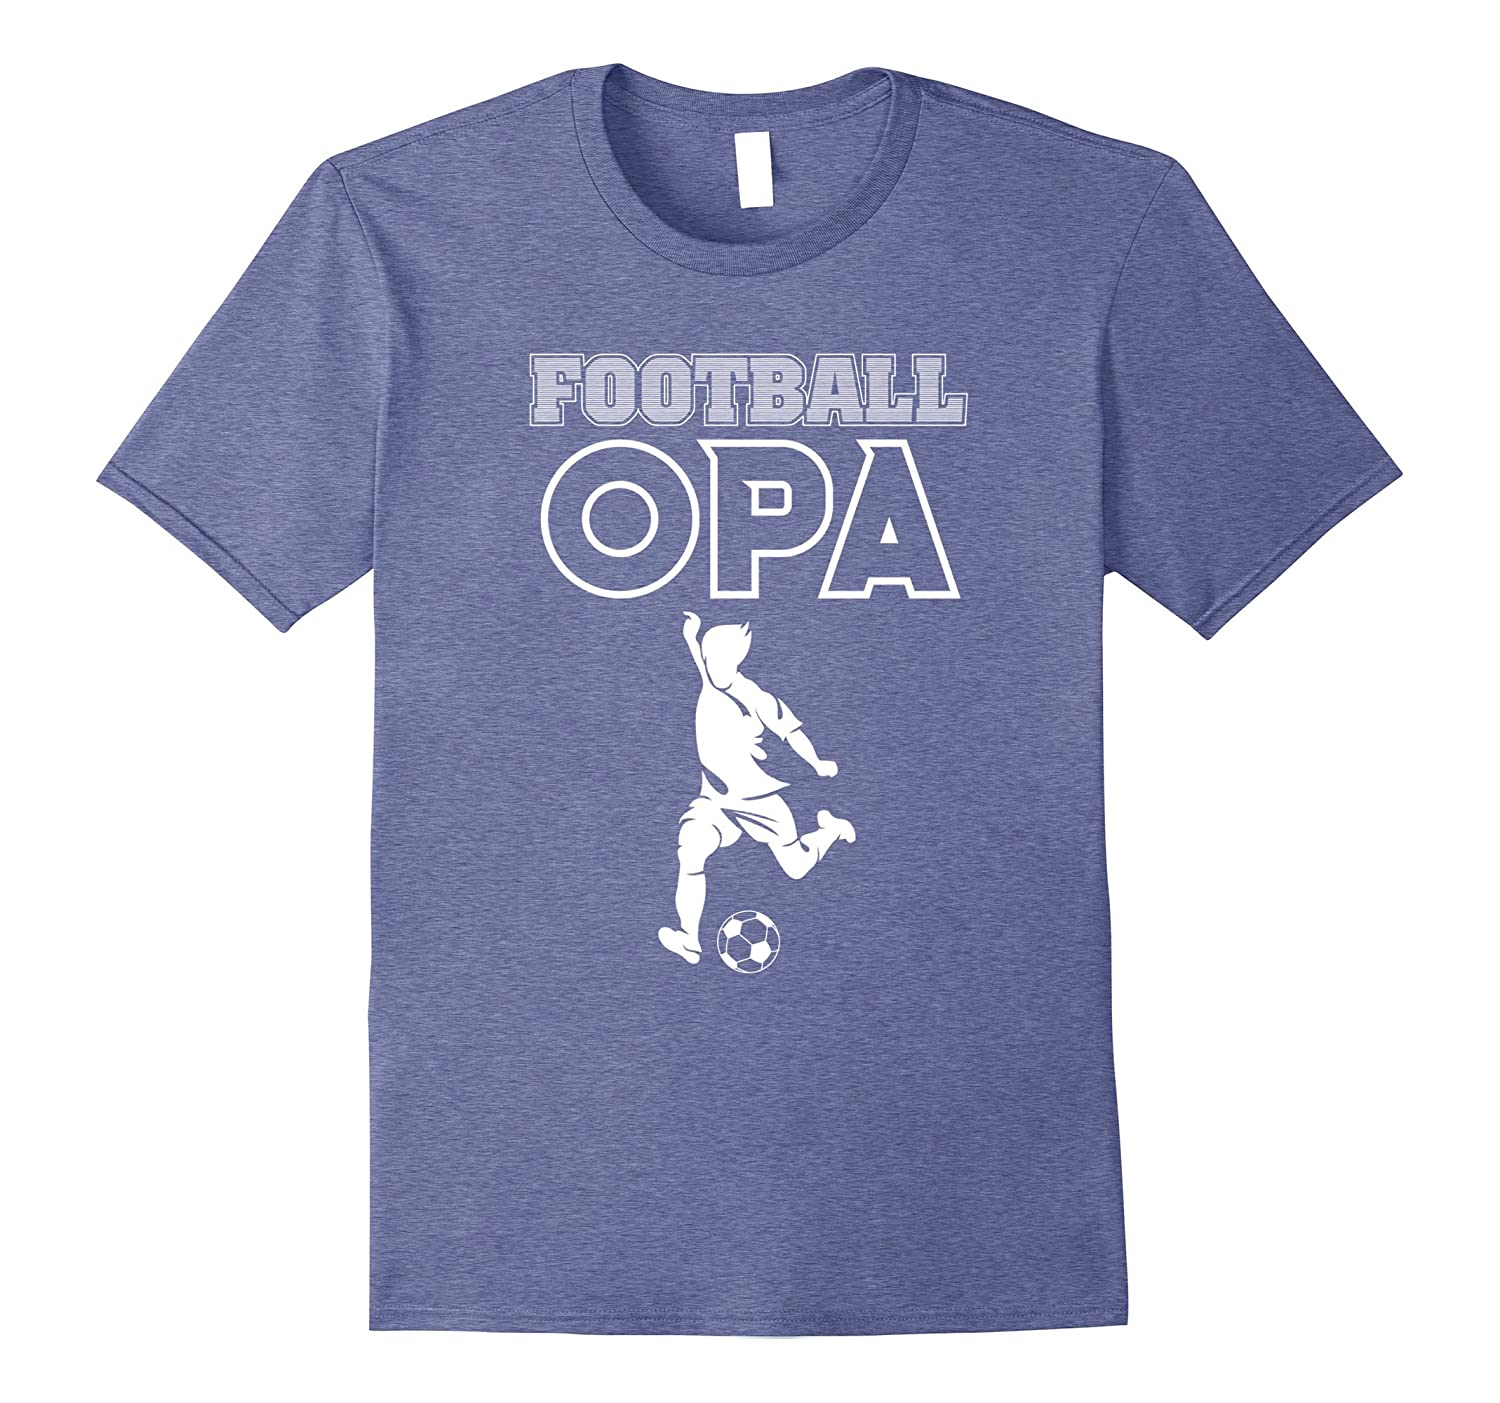 481aed86 Football Opa Shirt – Soccer Dad T-shirt Father Day Gifts – Hntee.com